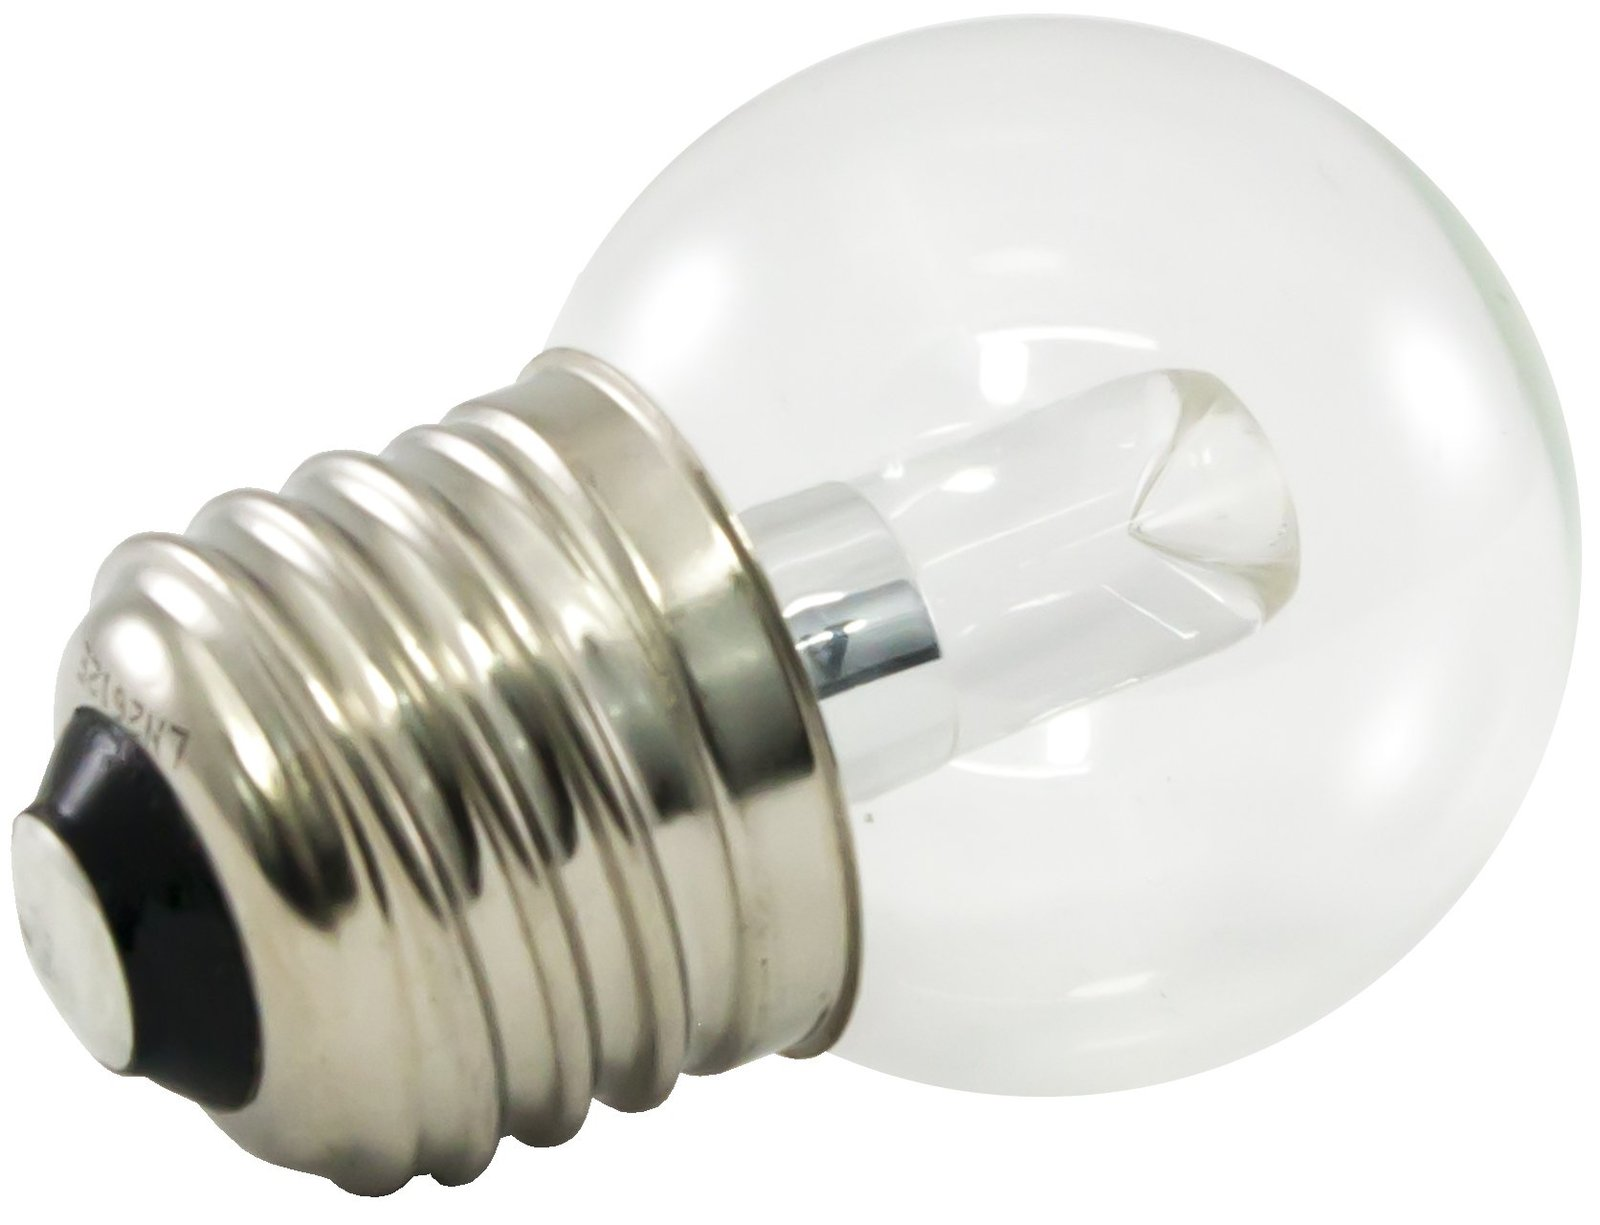 American Lighting PG40-E26-WH Dimmable LED G40 Globe Light Bulbs, Ideal for S... for sale  USA